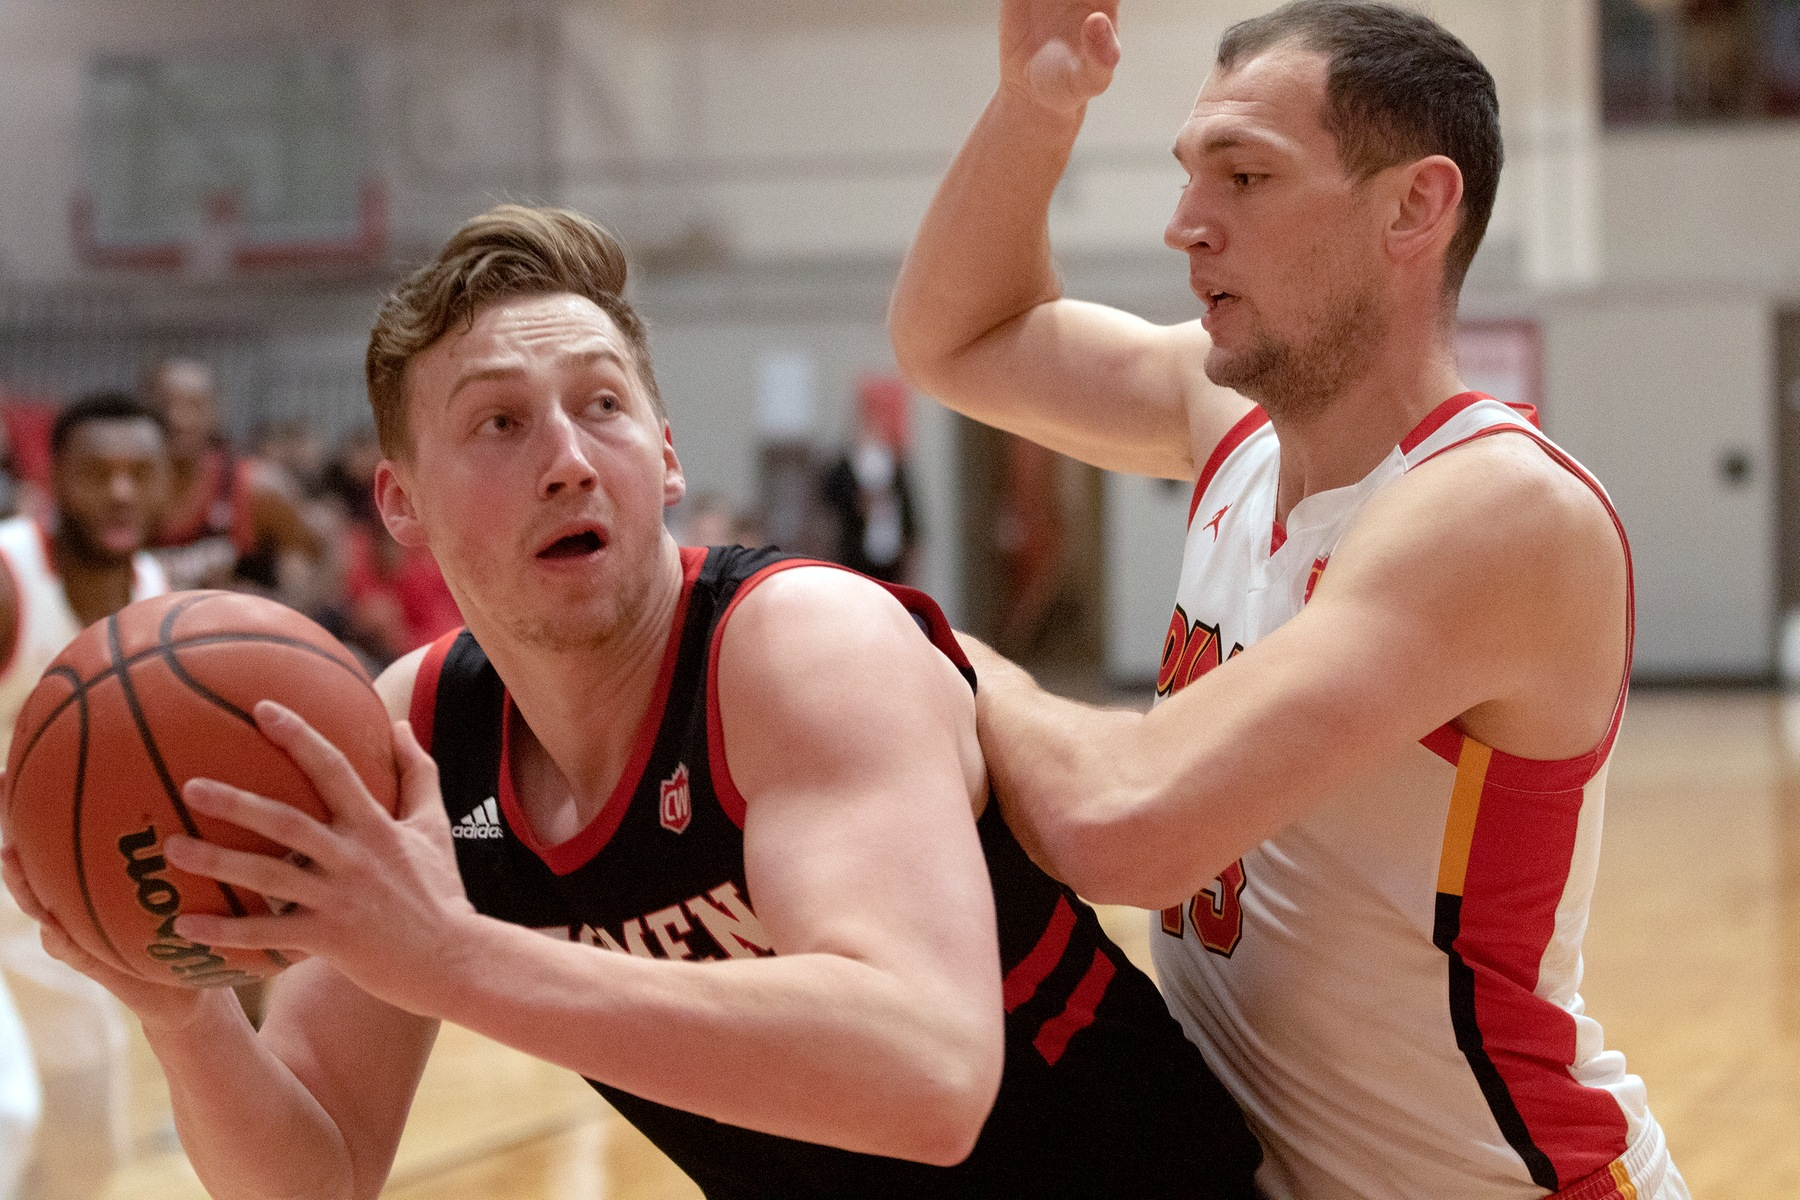 Winnipeg's Billy Yaworsky (left) posts up against Calgary's Brett Layton during men's basketball action Saturday, Jan. 18, 2020. (David Larkins/Wesmen Basketball)